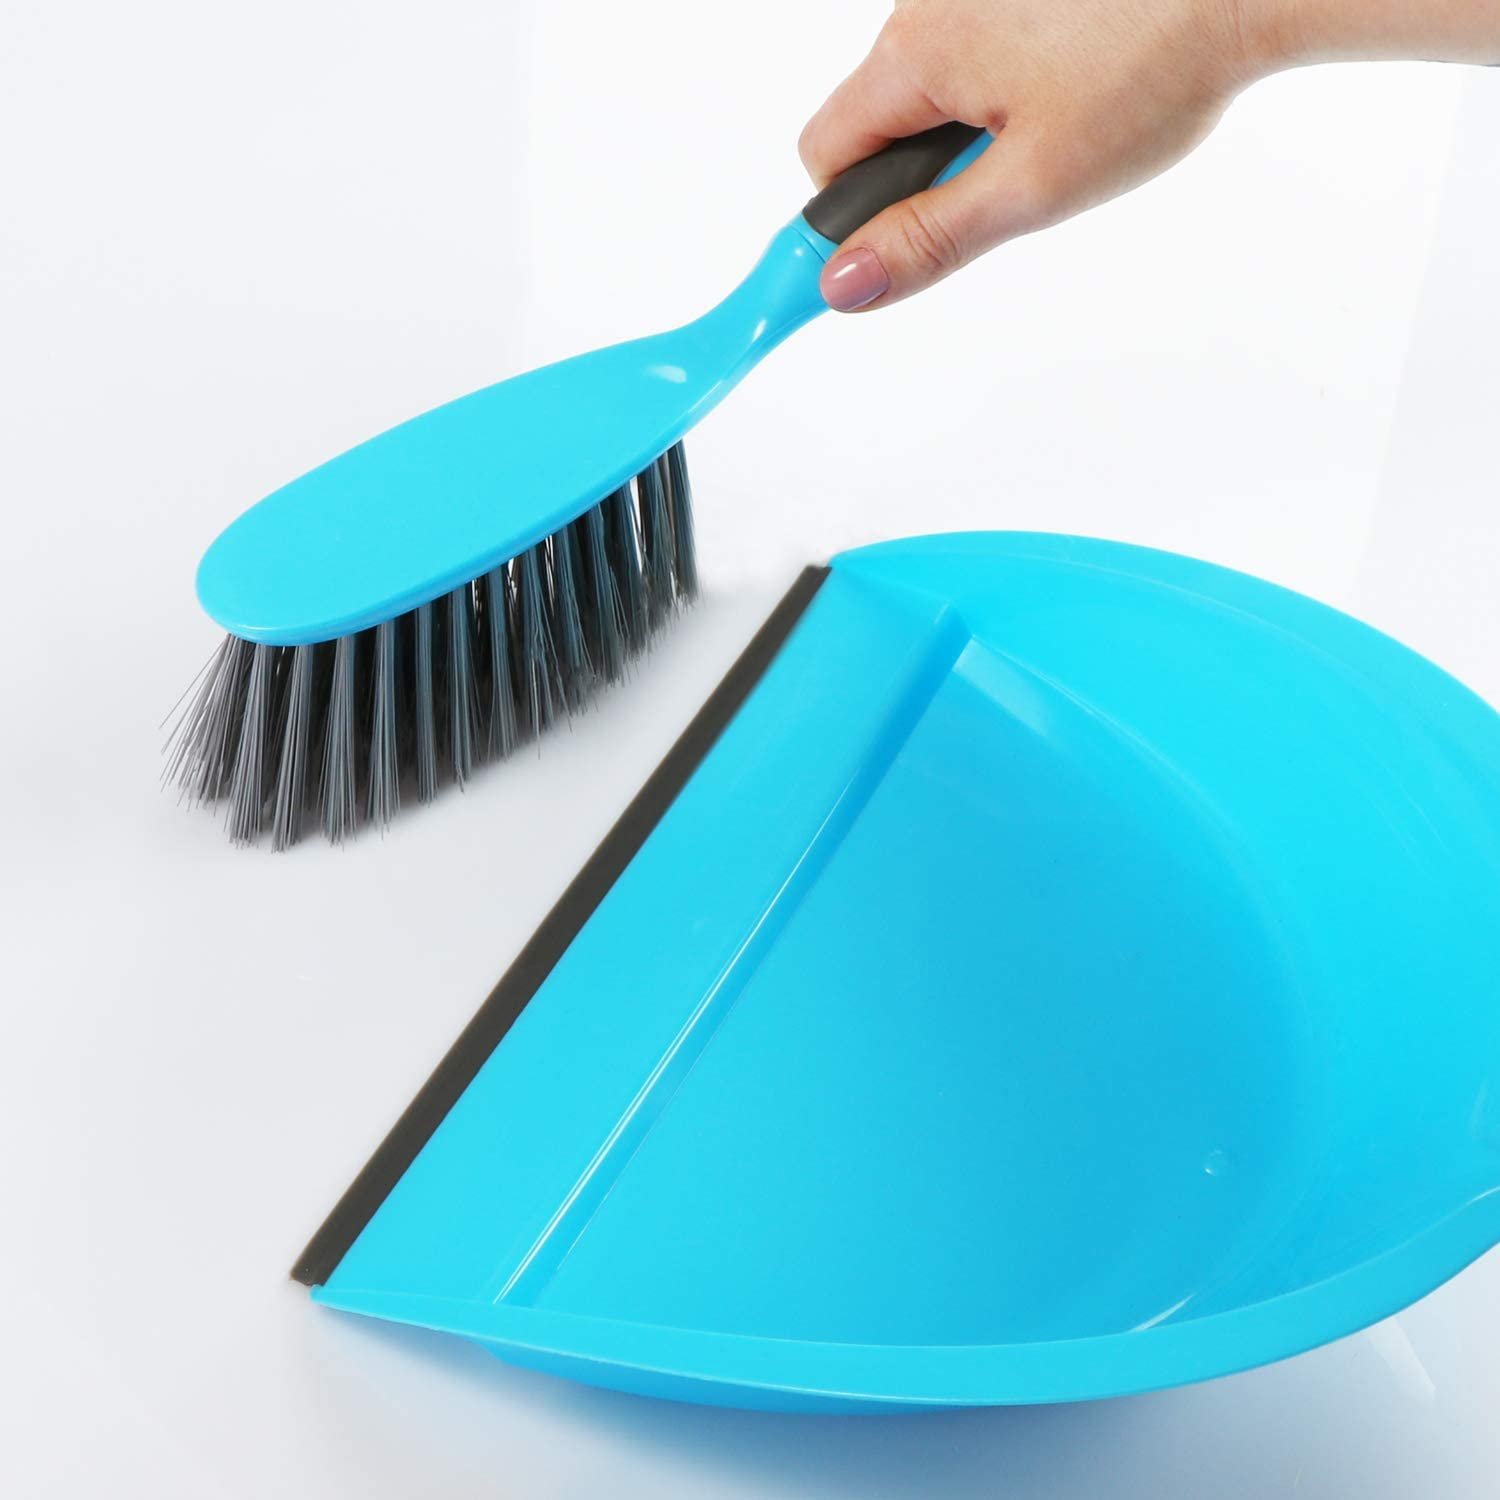 4-in-1 hand brush dustpan 06-piece cleaning set - blue com-four/® 6-piece cleaning set broom perfect cleaning starter set joint brush and dish brush